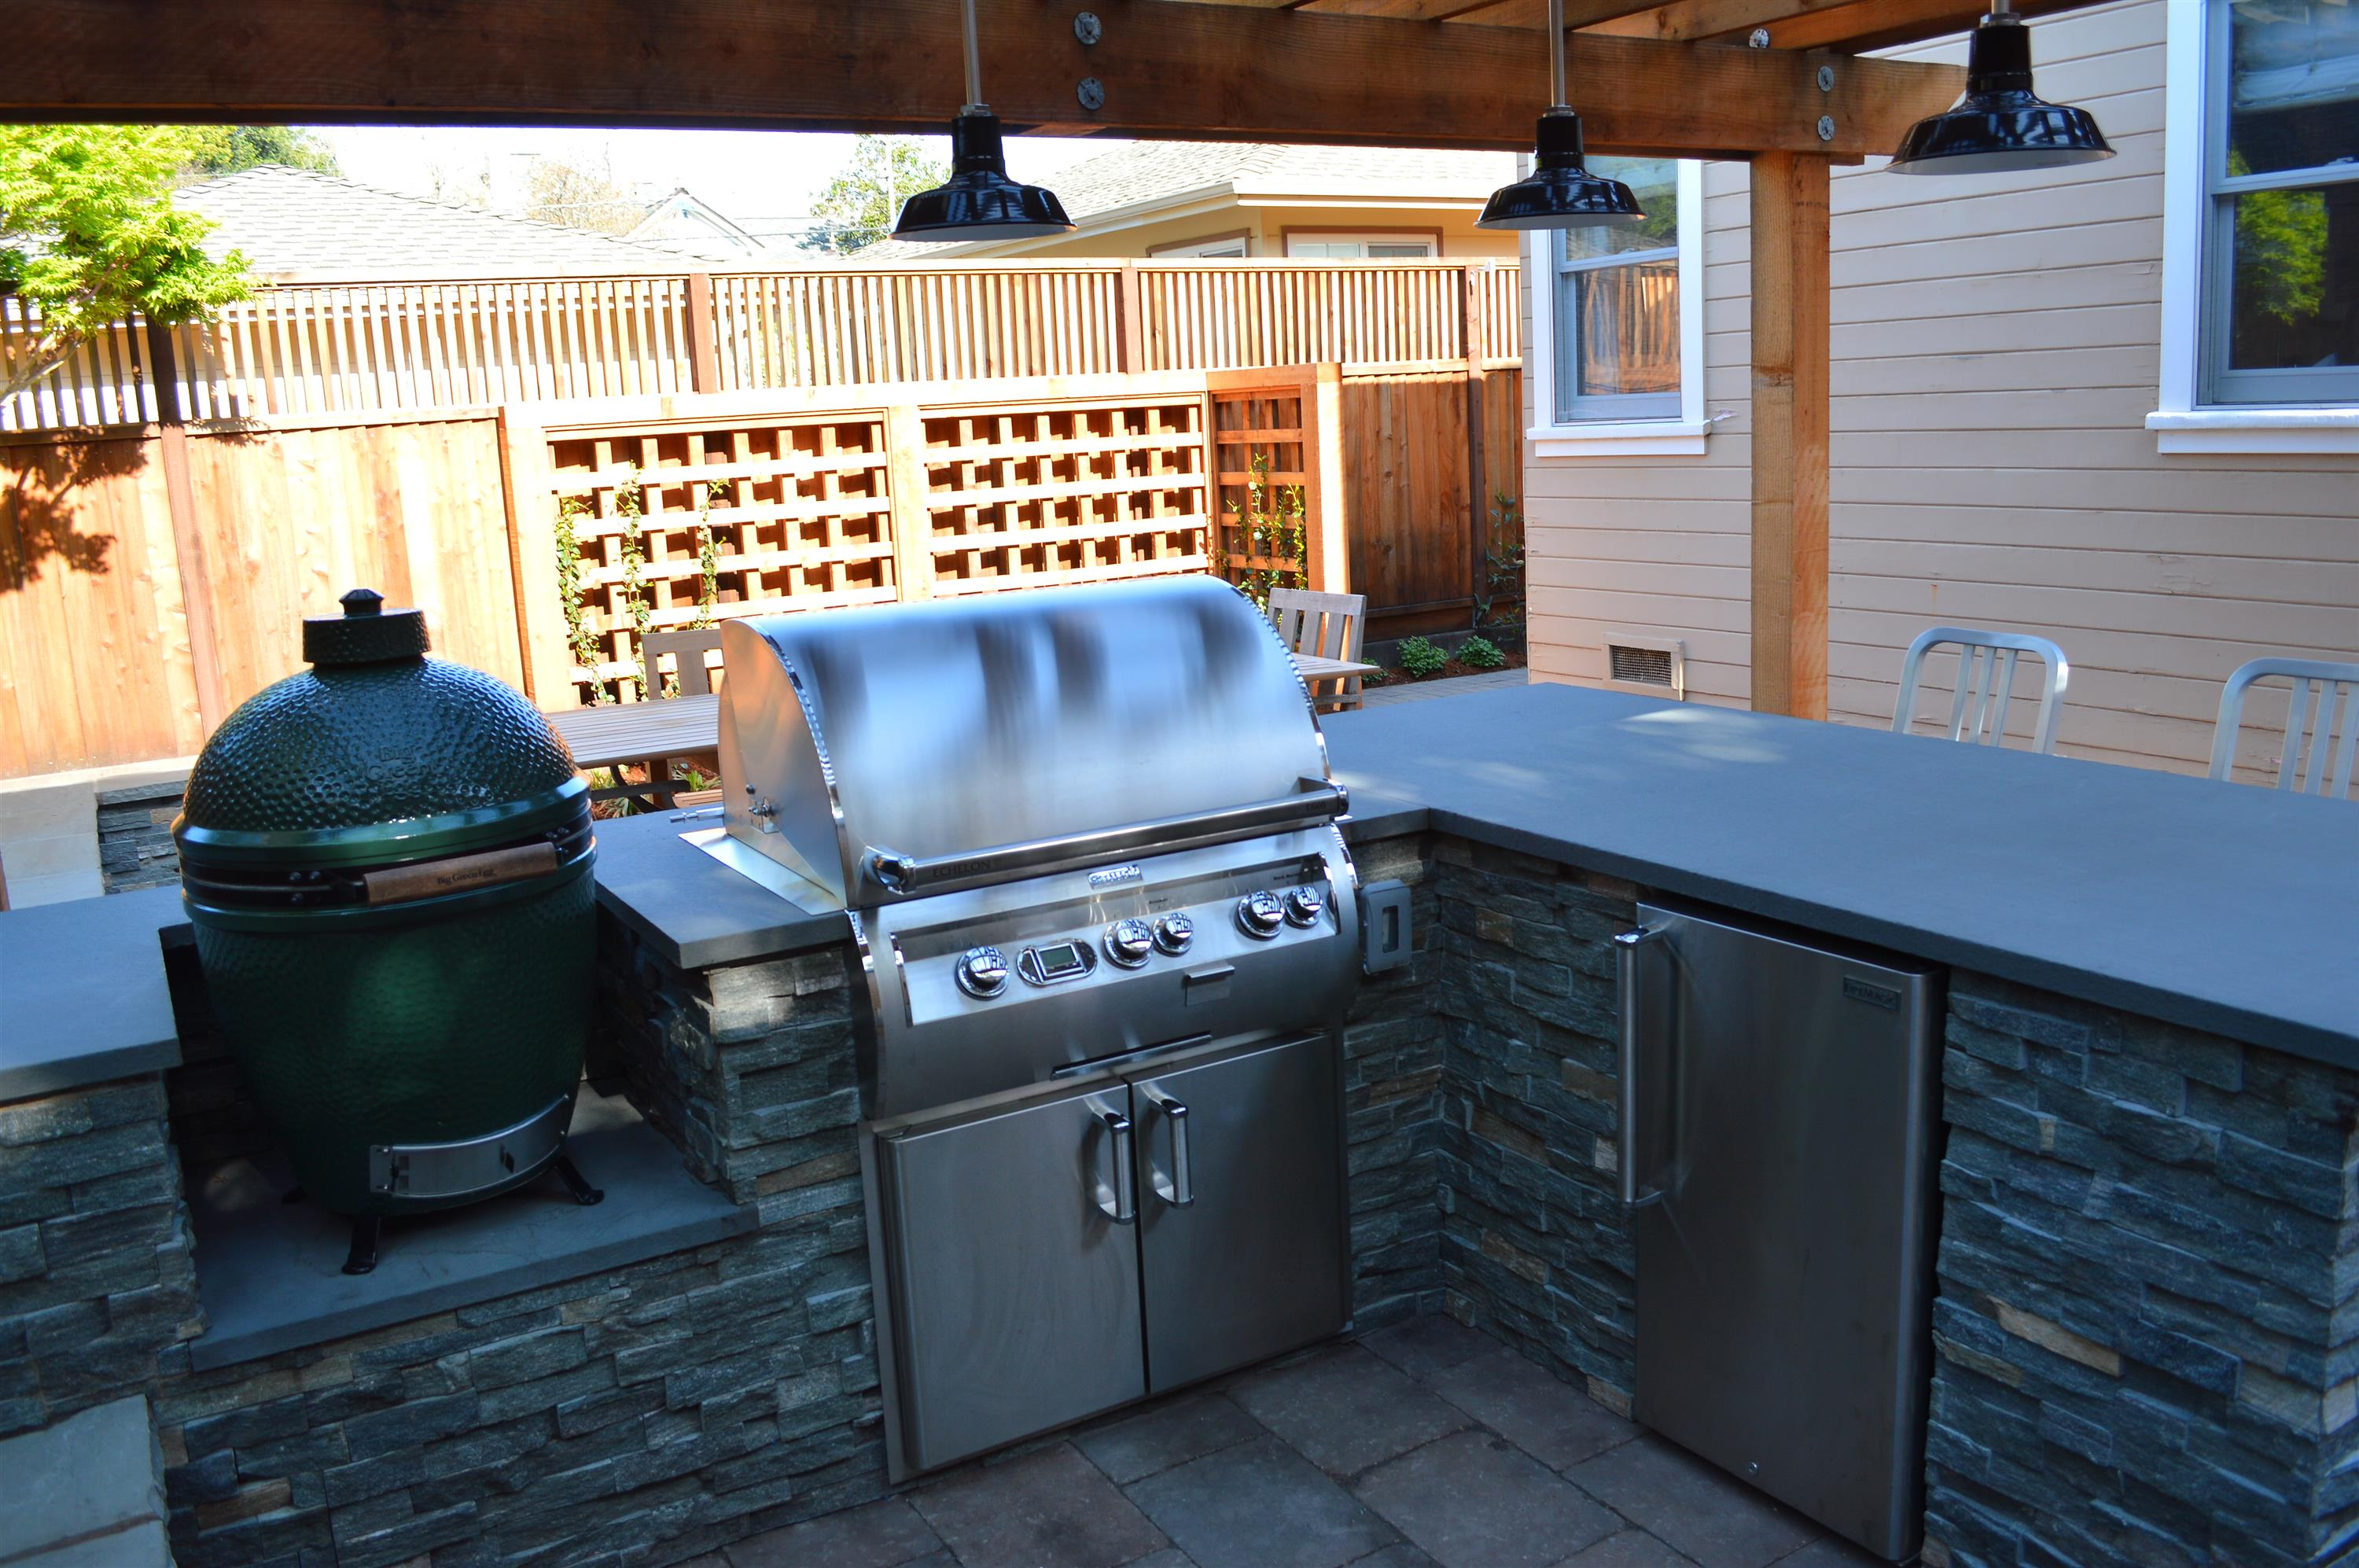 petaluma project bbq island with firemagic grill outdoor fridge